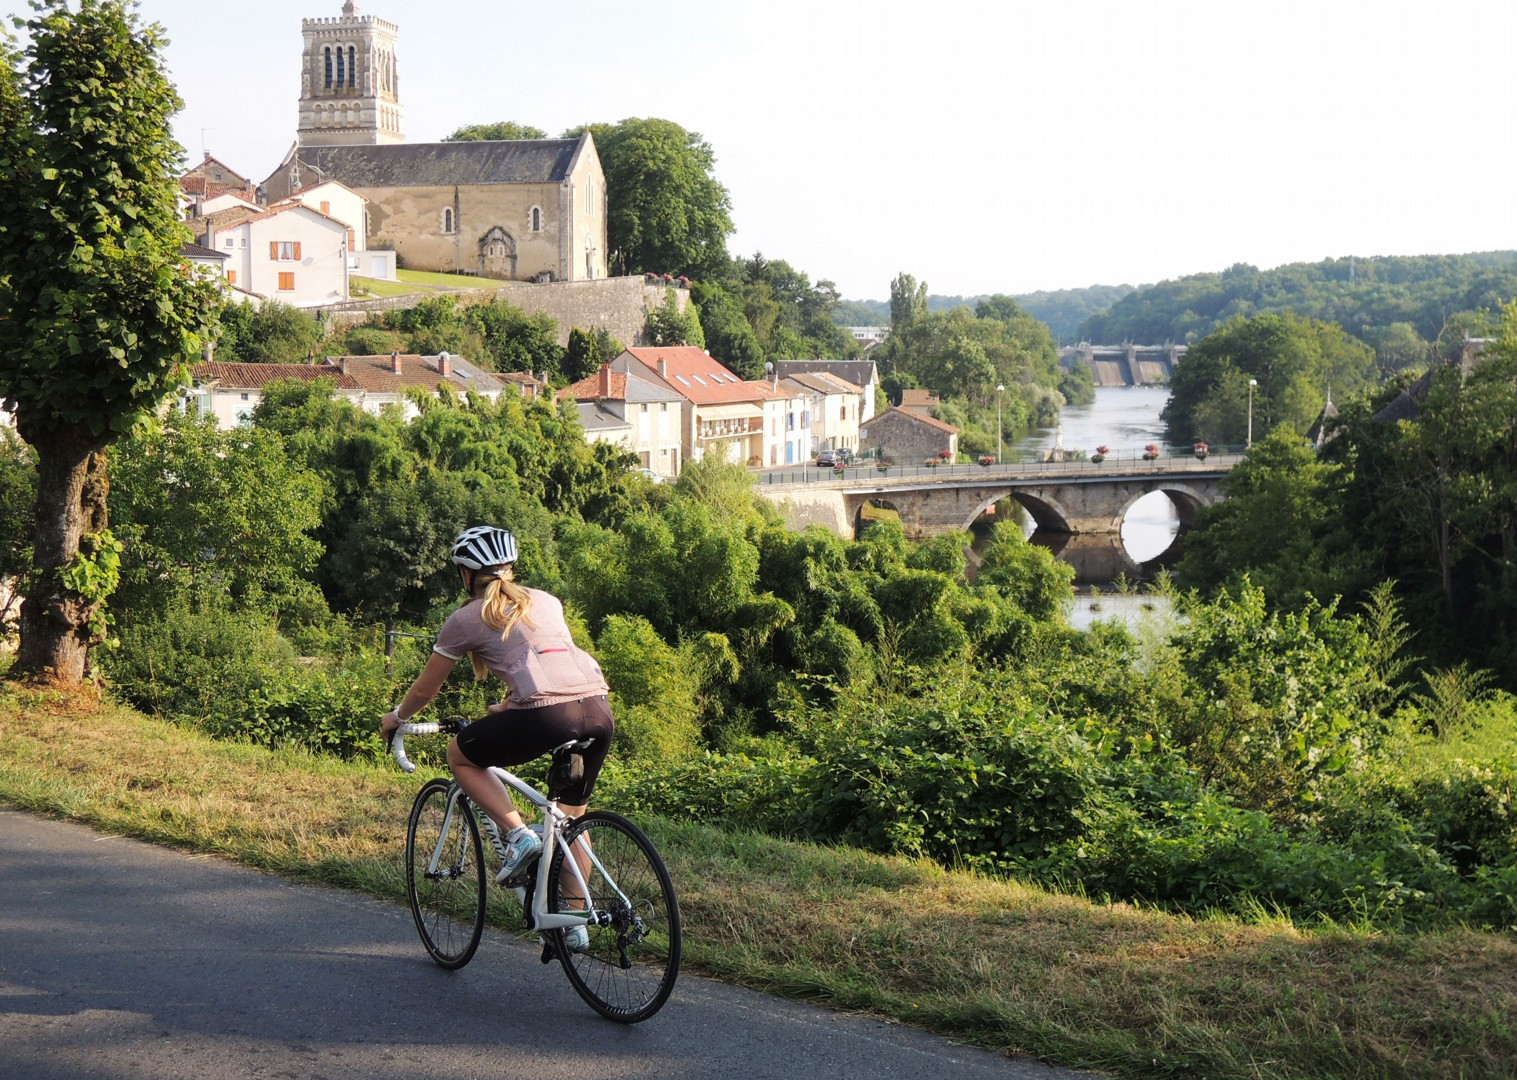 france-st-malo-to-nice.jpg - France - St Malo to Nice Classic - Road Cycling